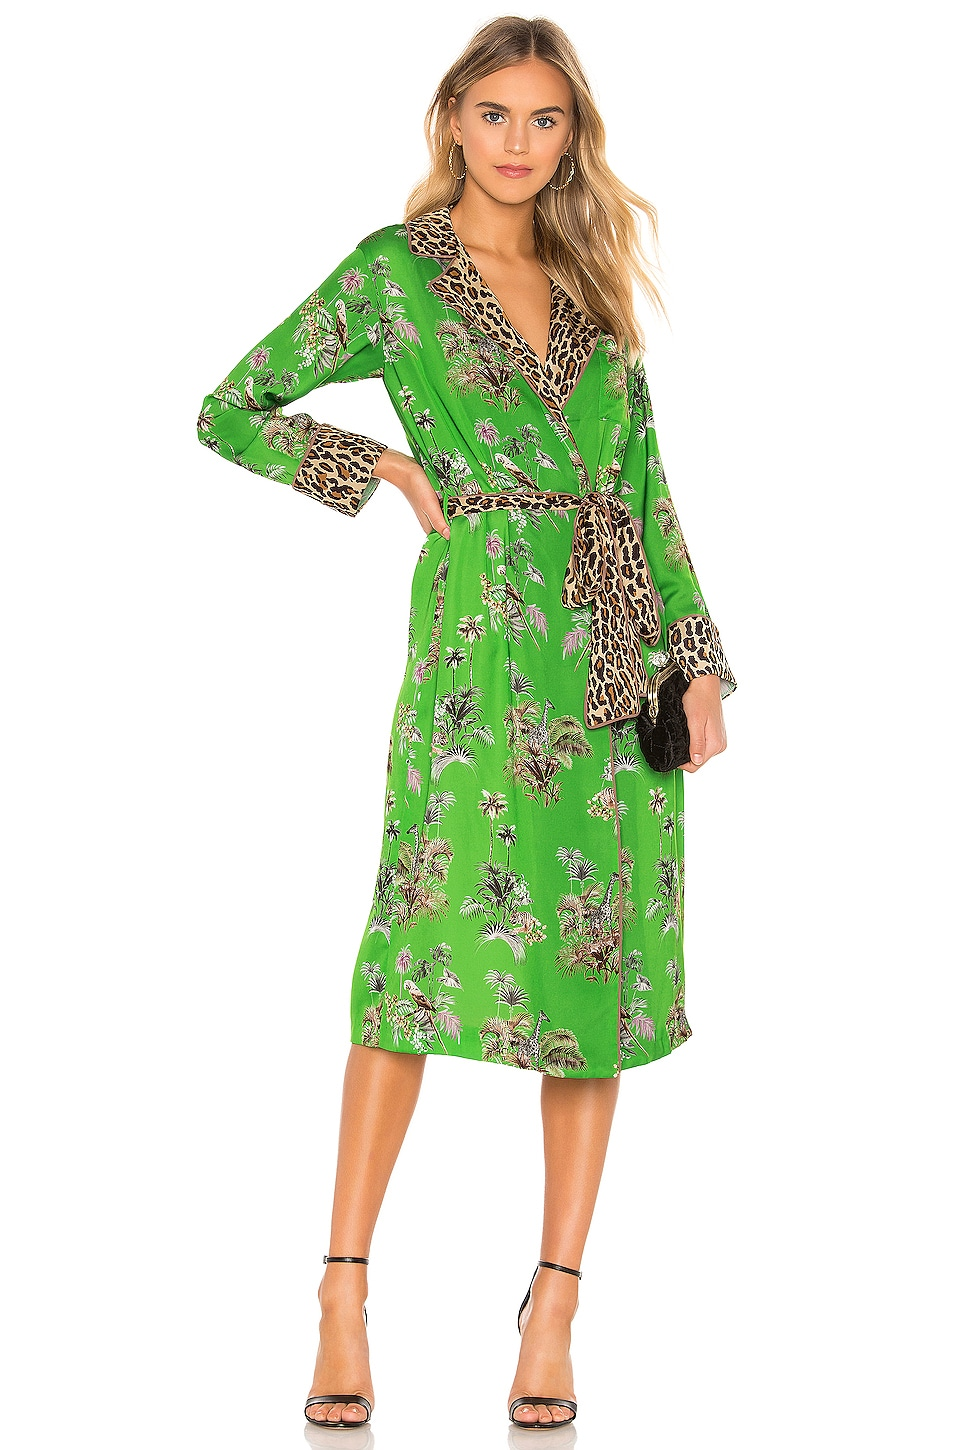 Le Superbe Vacation Robe Dress in Emerald Jungle